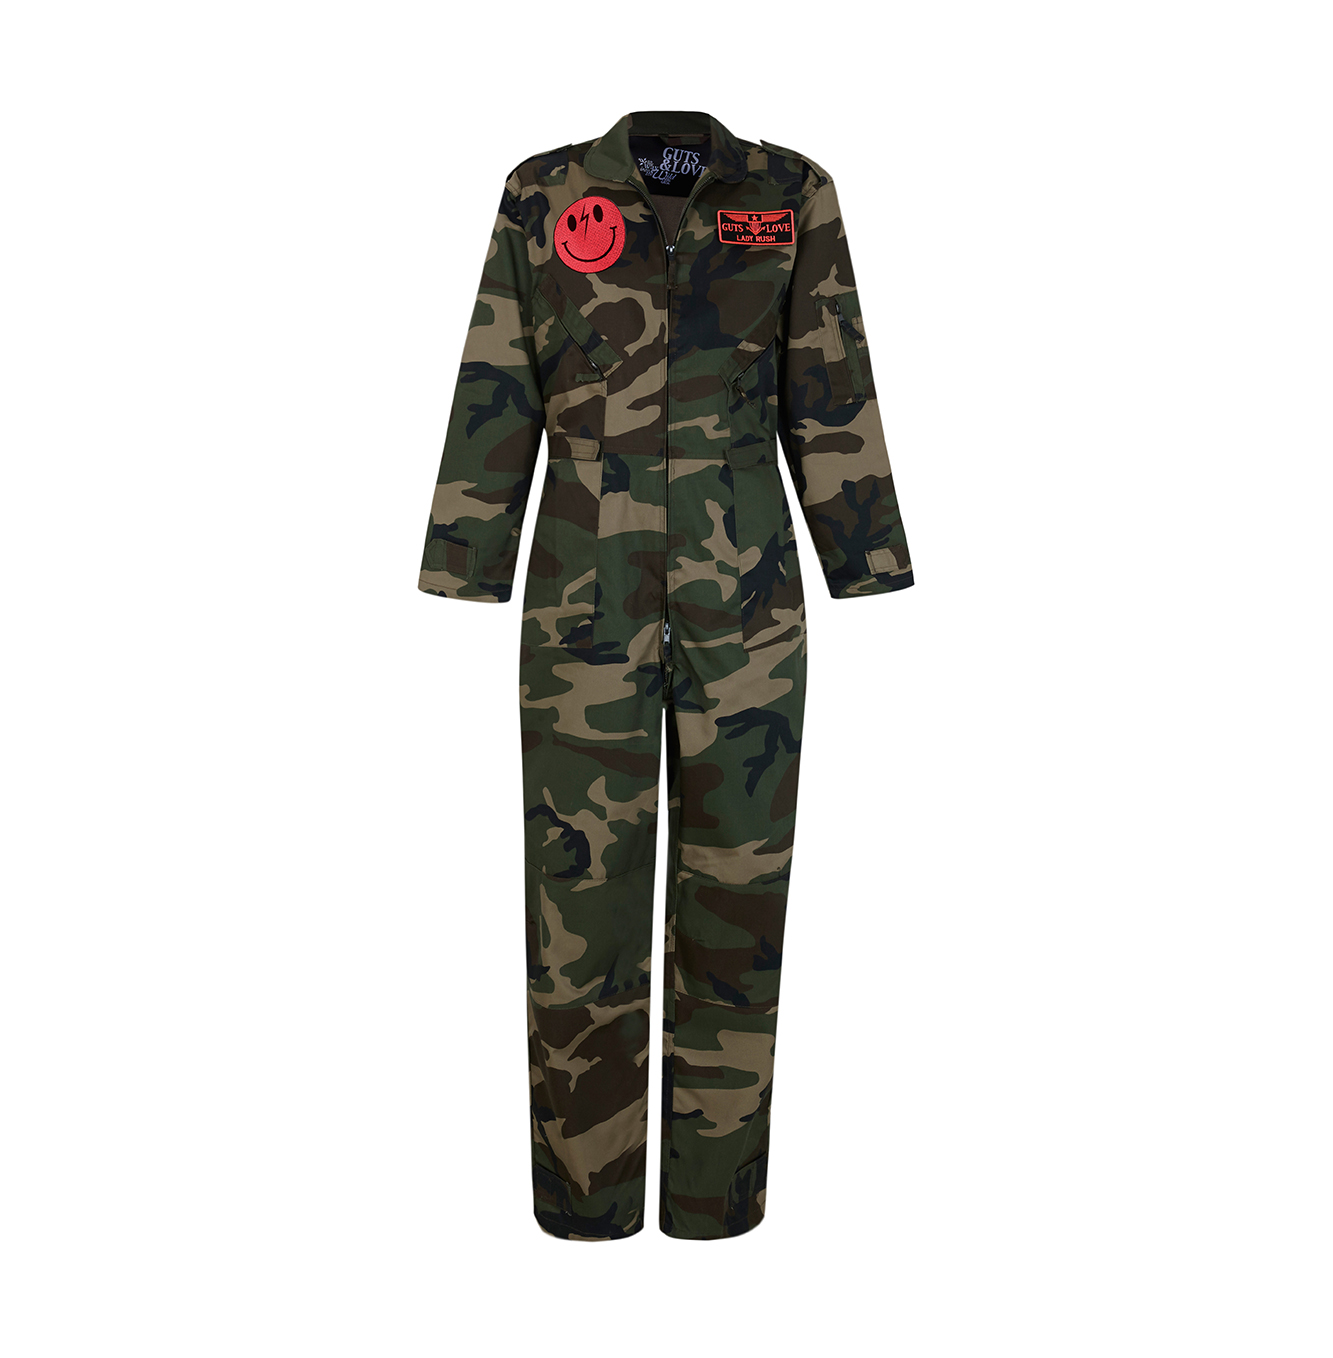 MONO TOP GUTS MILITAR COVERALL RUSH by Guts&Love vista delantera